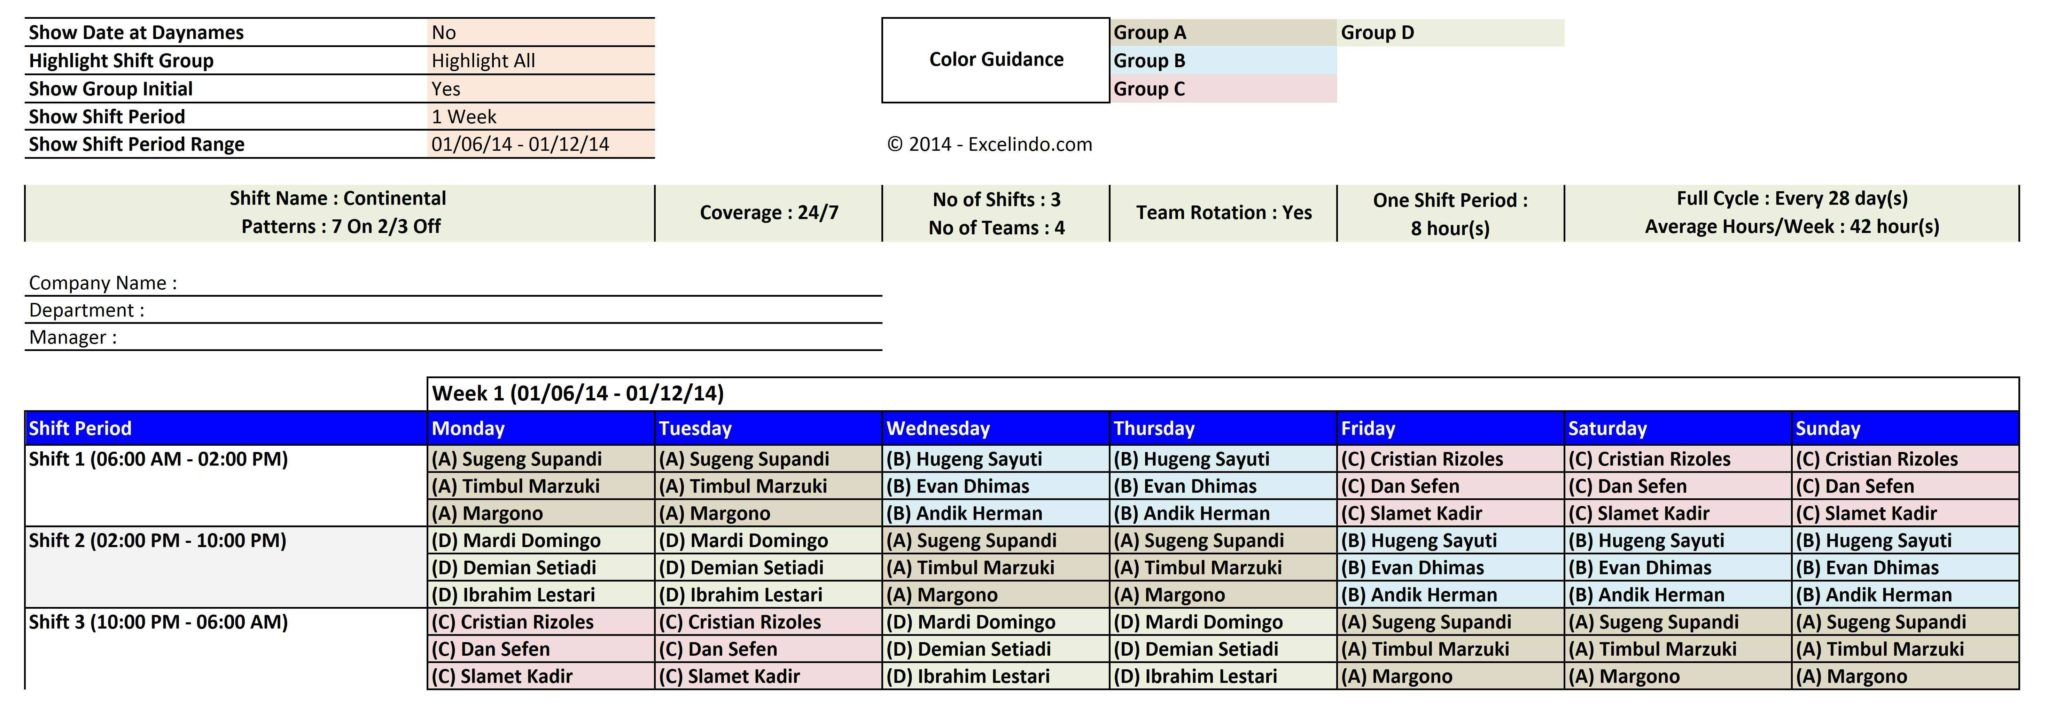 weekly employee shift schedule template free download